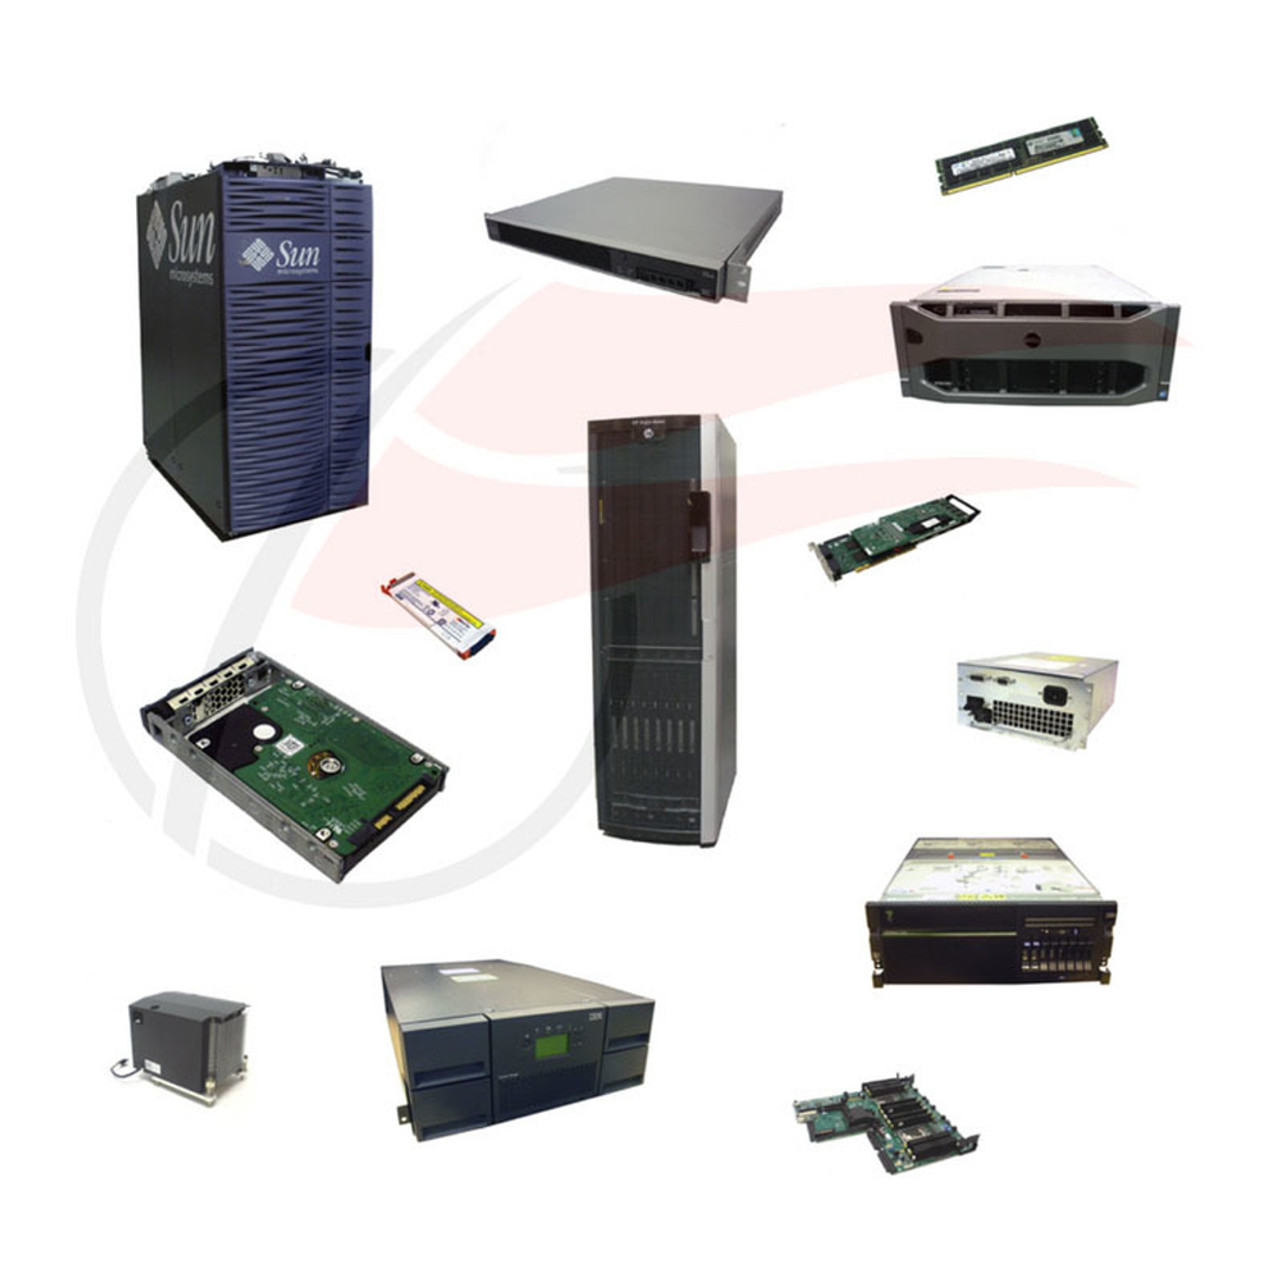 HP Integrity rx2660 Spare Parts